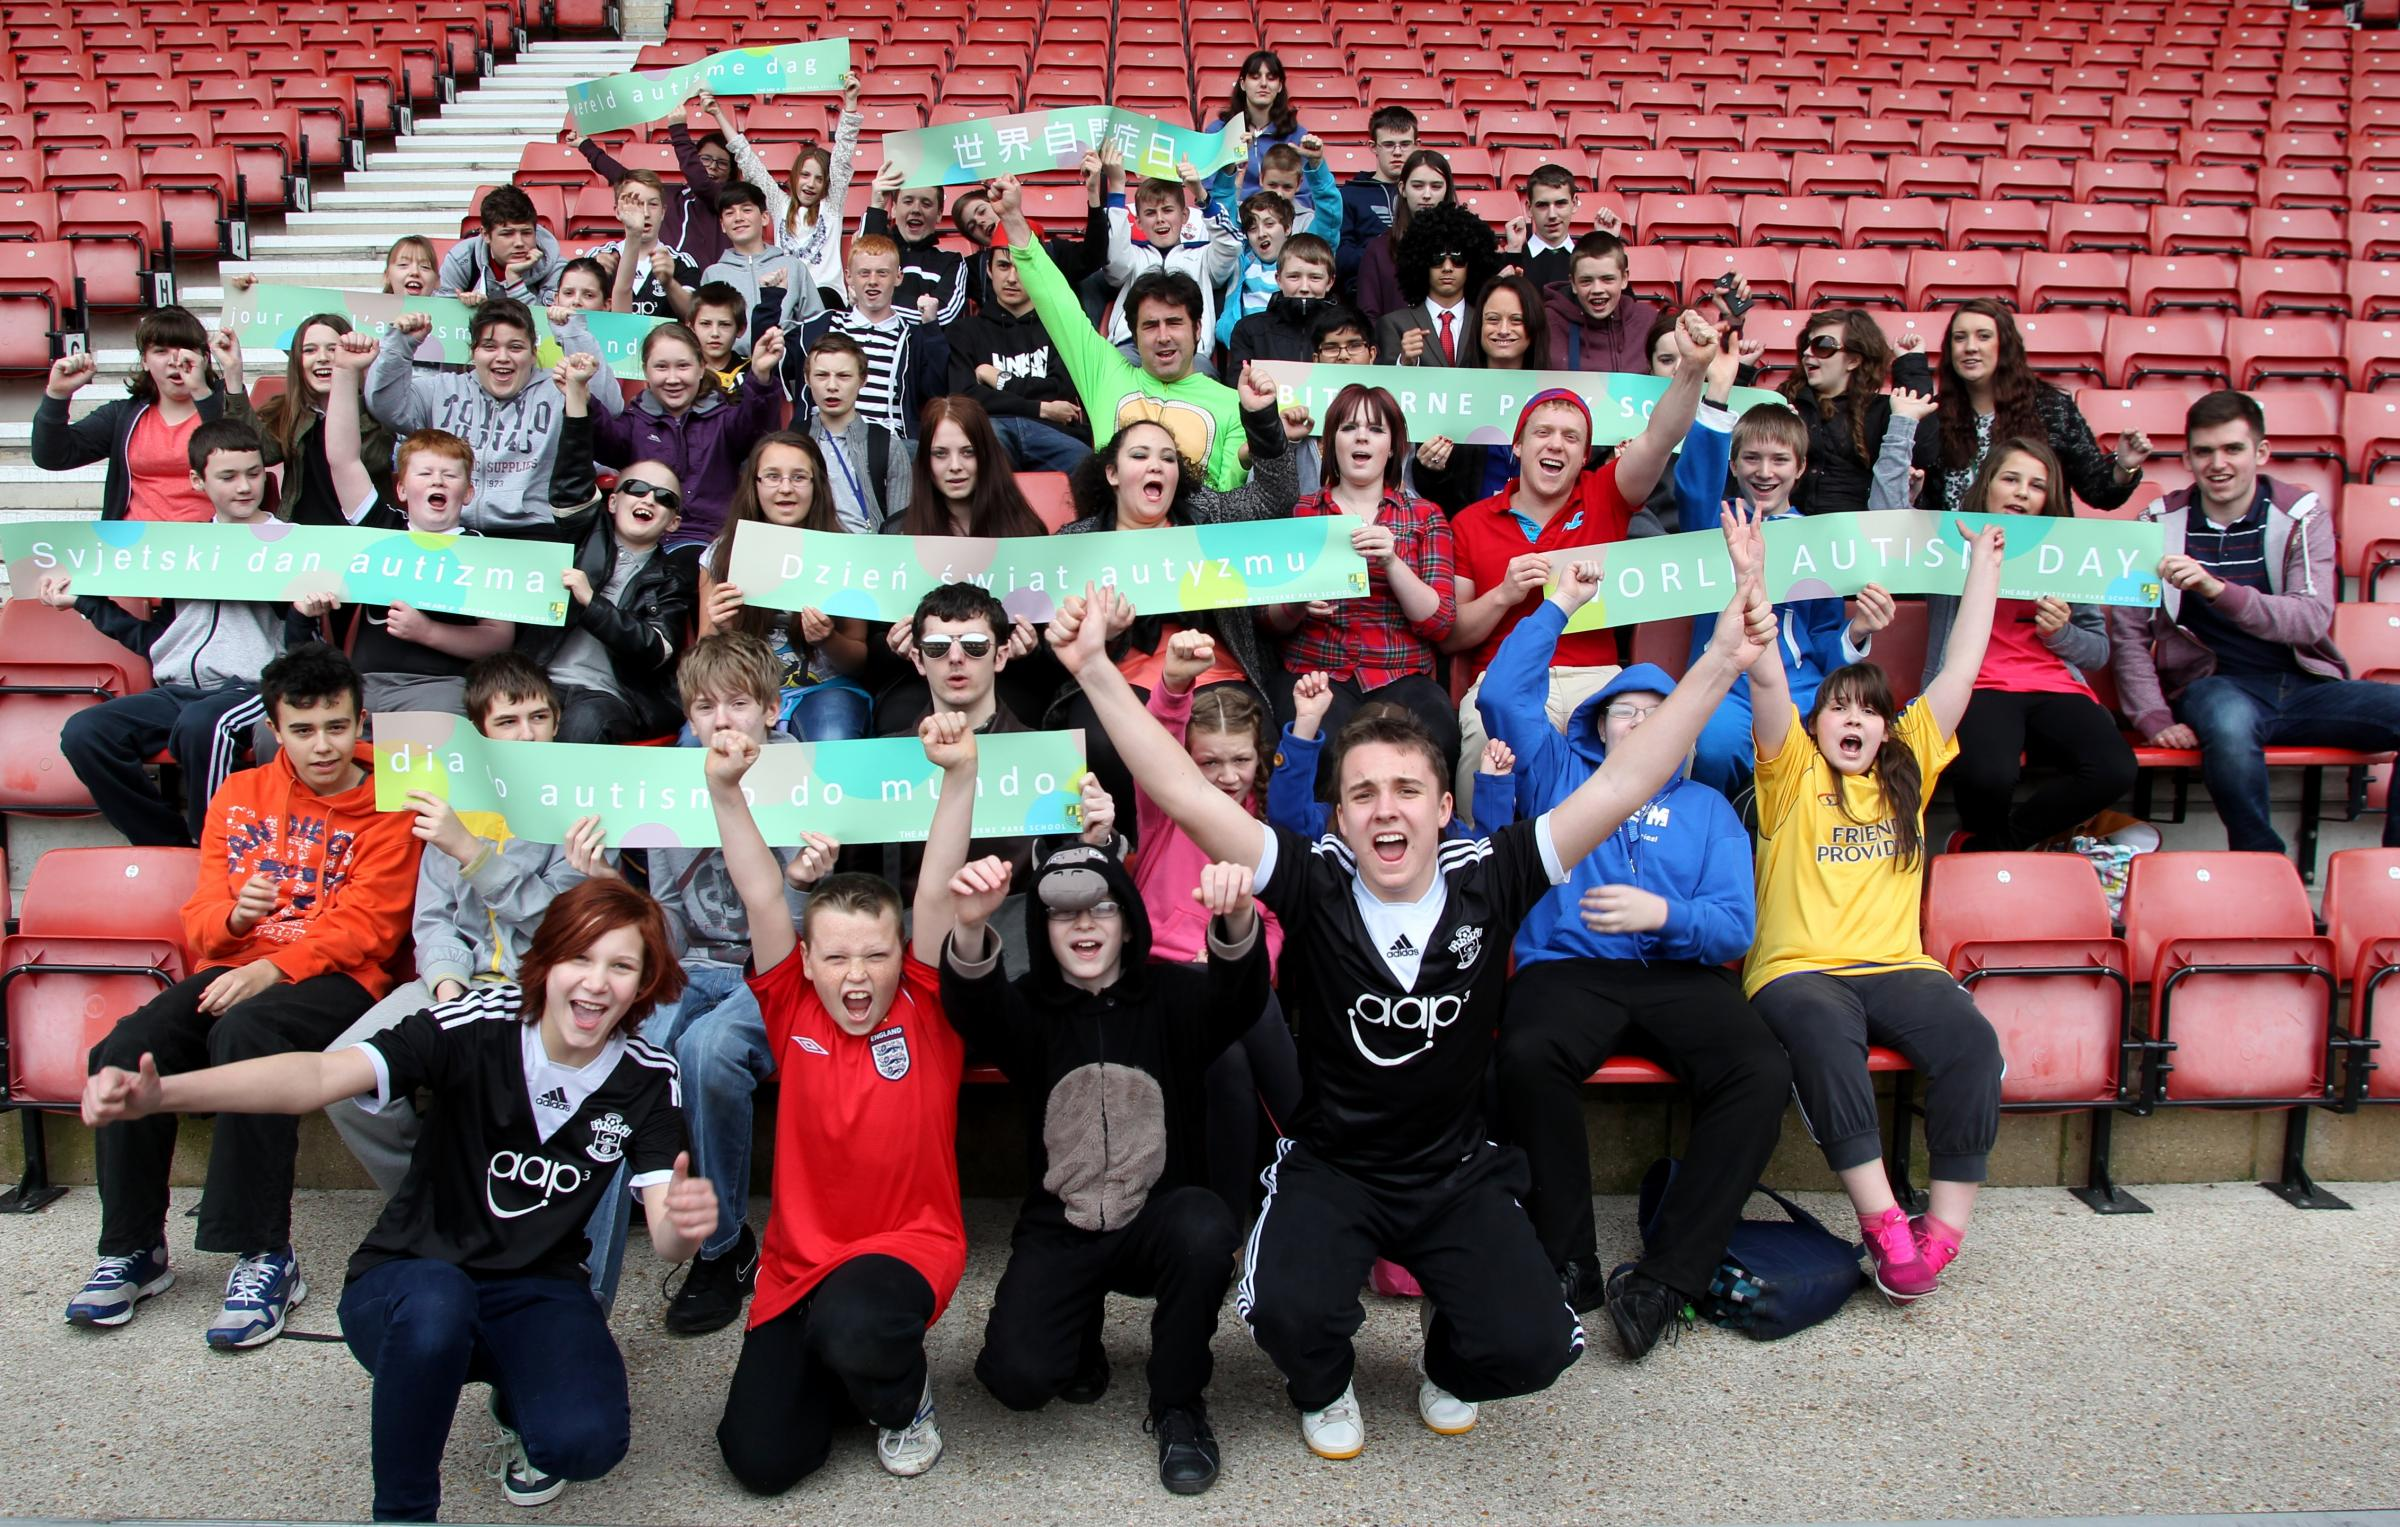 Bitterne Park School pupils celebrate World Autism Day at St Mary's Stadium.